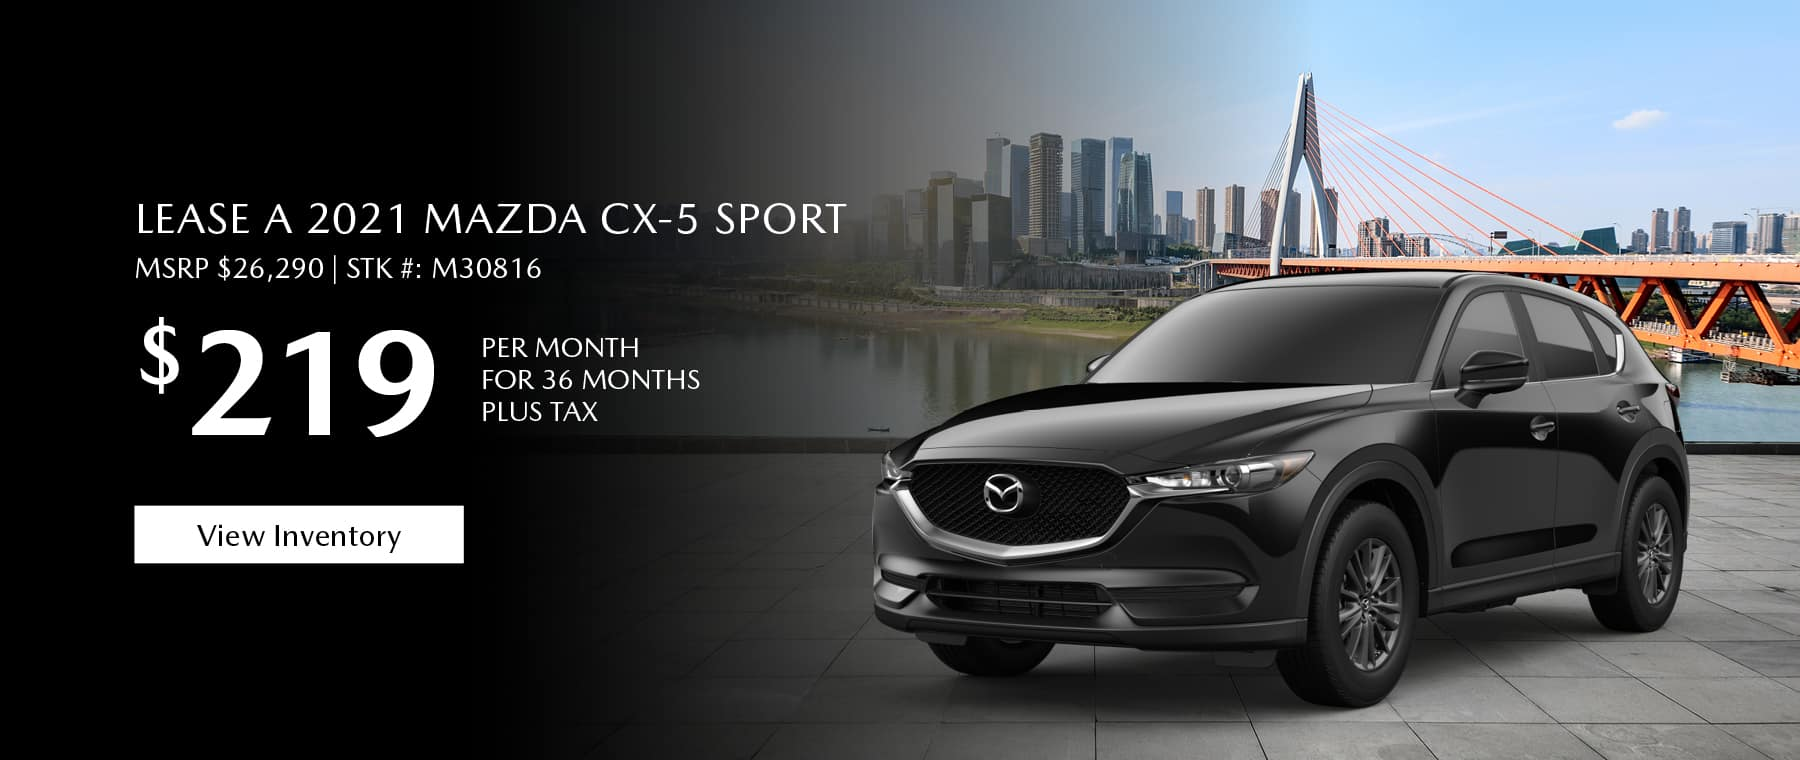 Lease the 2021 Mazda CX-5 for $219 per month, plus tax for 36 months. Click or tap here to view our inventory.